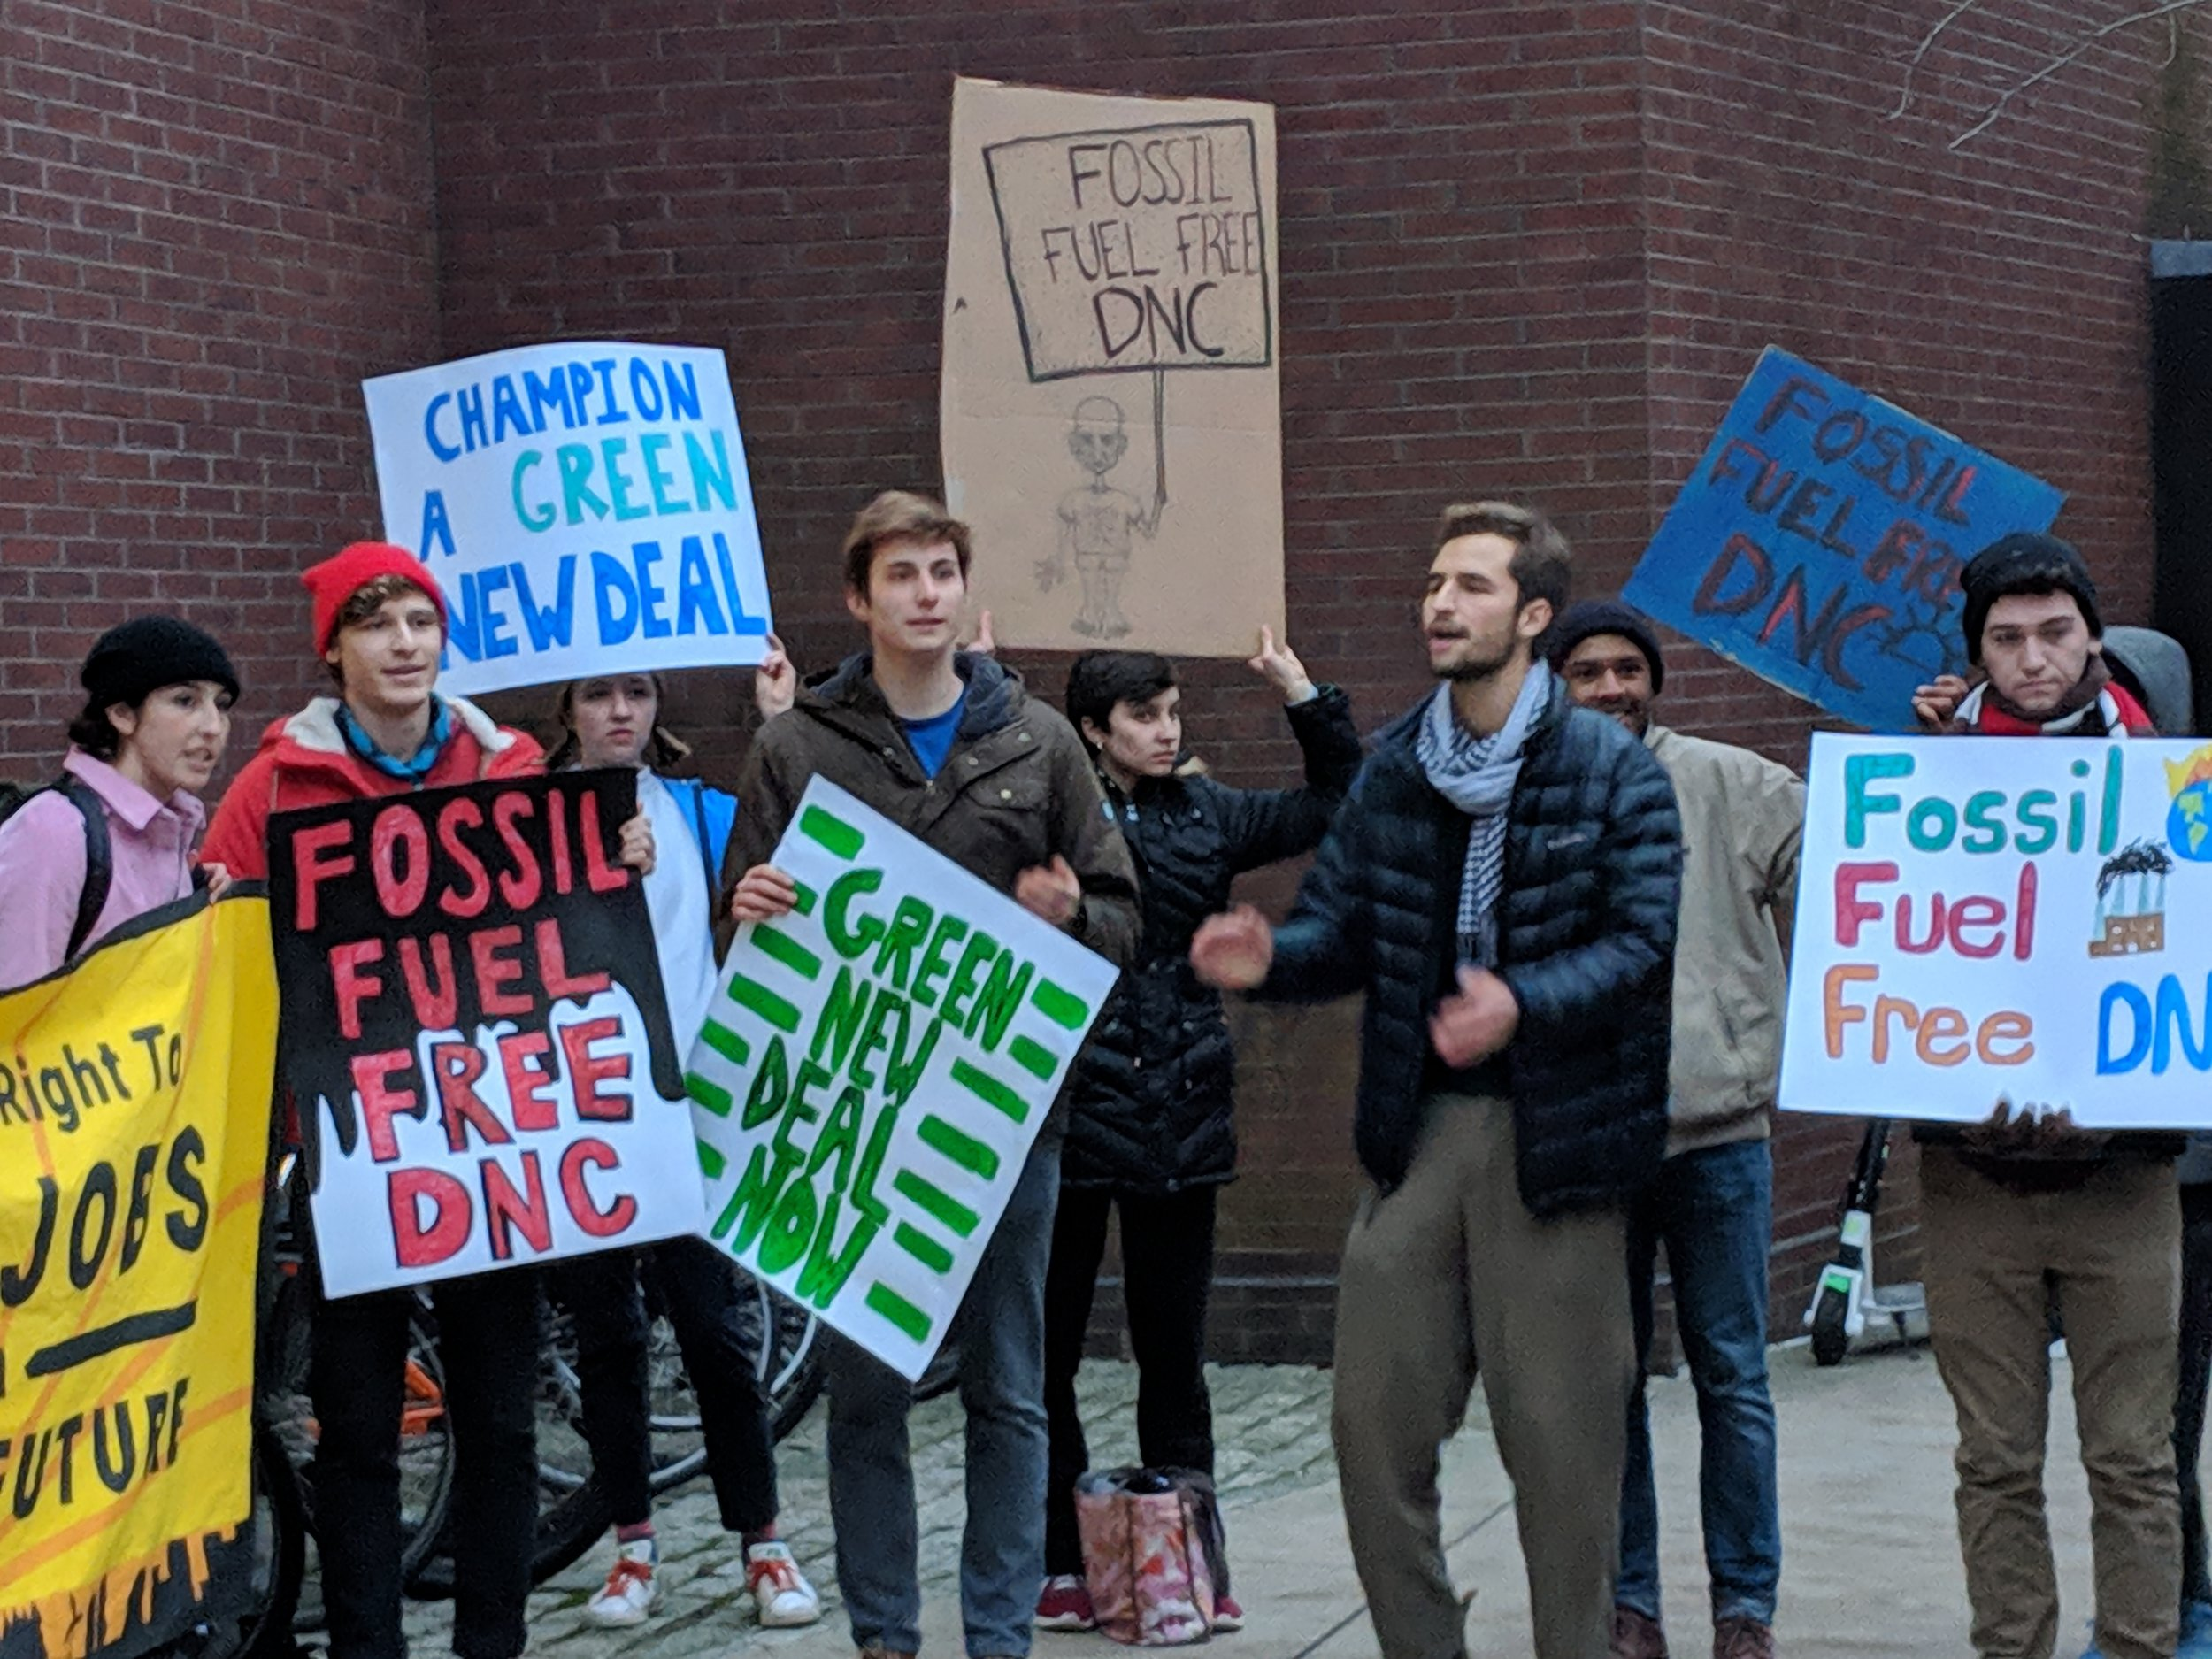 College students protest outside Brown University during a Nov. 19 visit to campus by Democratic National Committee chairman Tom Perez. (Tim Faulkner/ecoRI News)